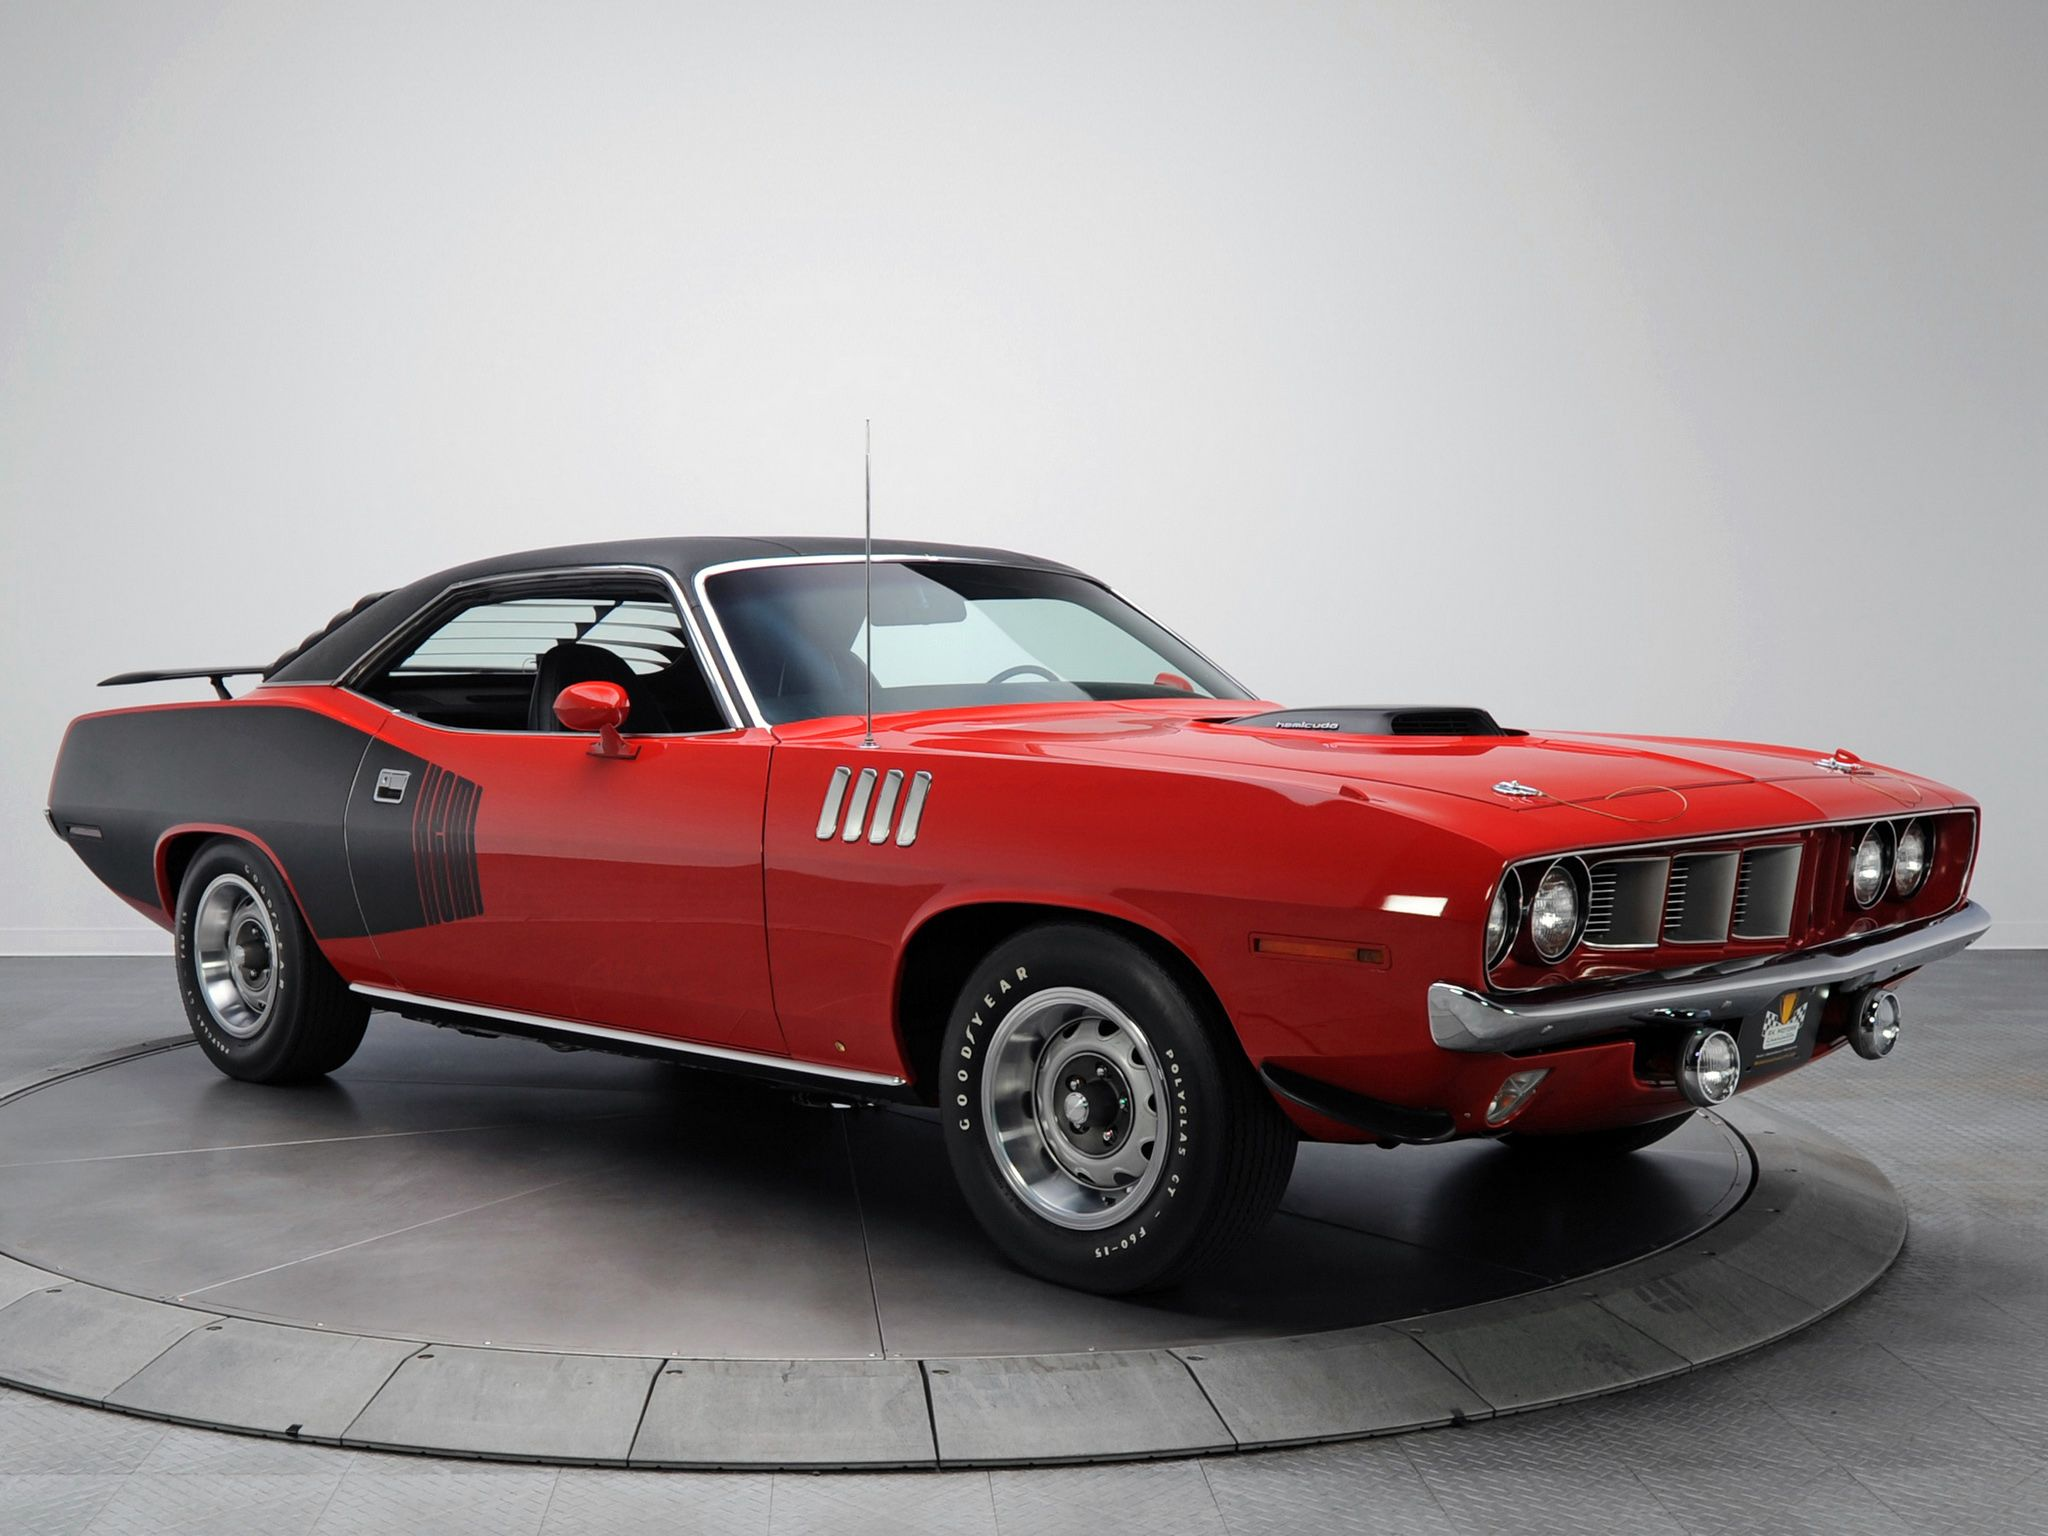 hemi muscle cars - photo #28